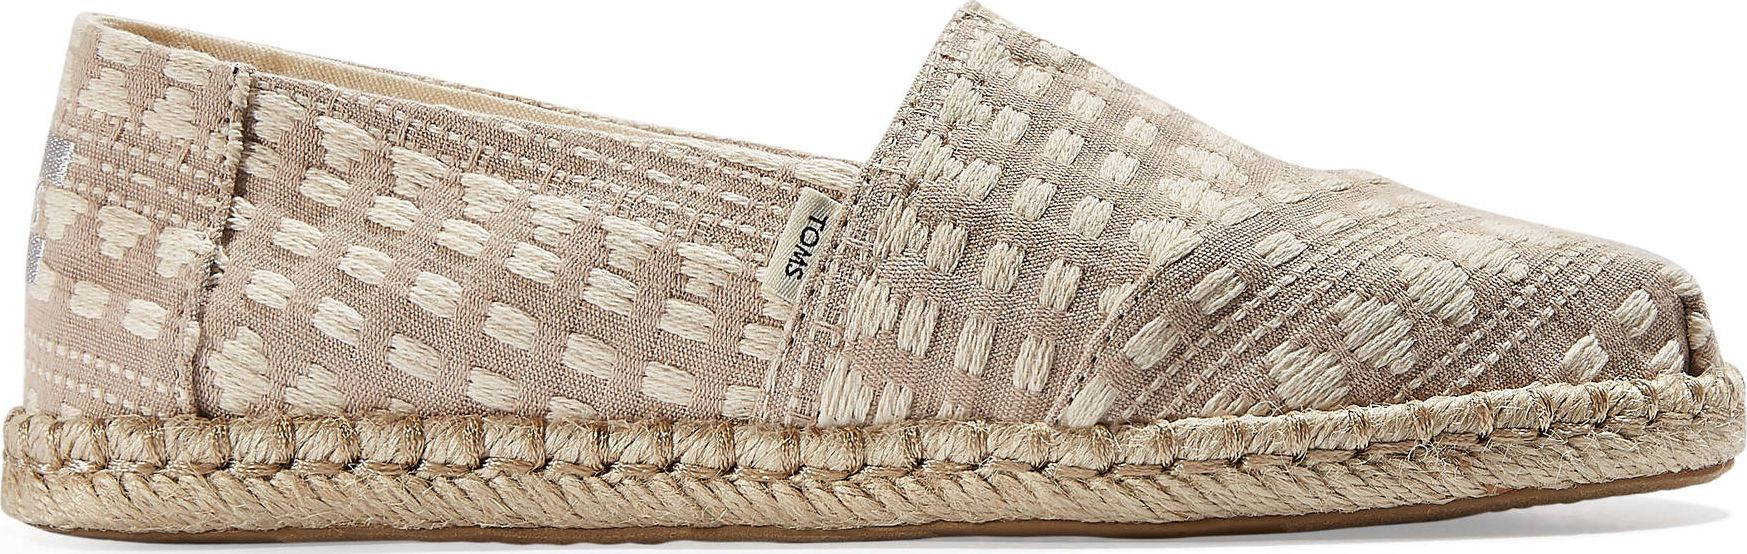 TOMS Global Woven Rope Women's Alpargata Taupe 39